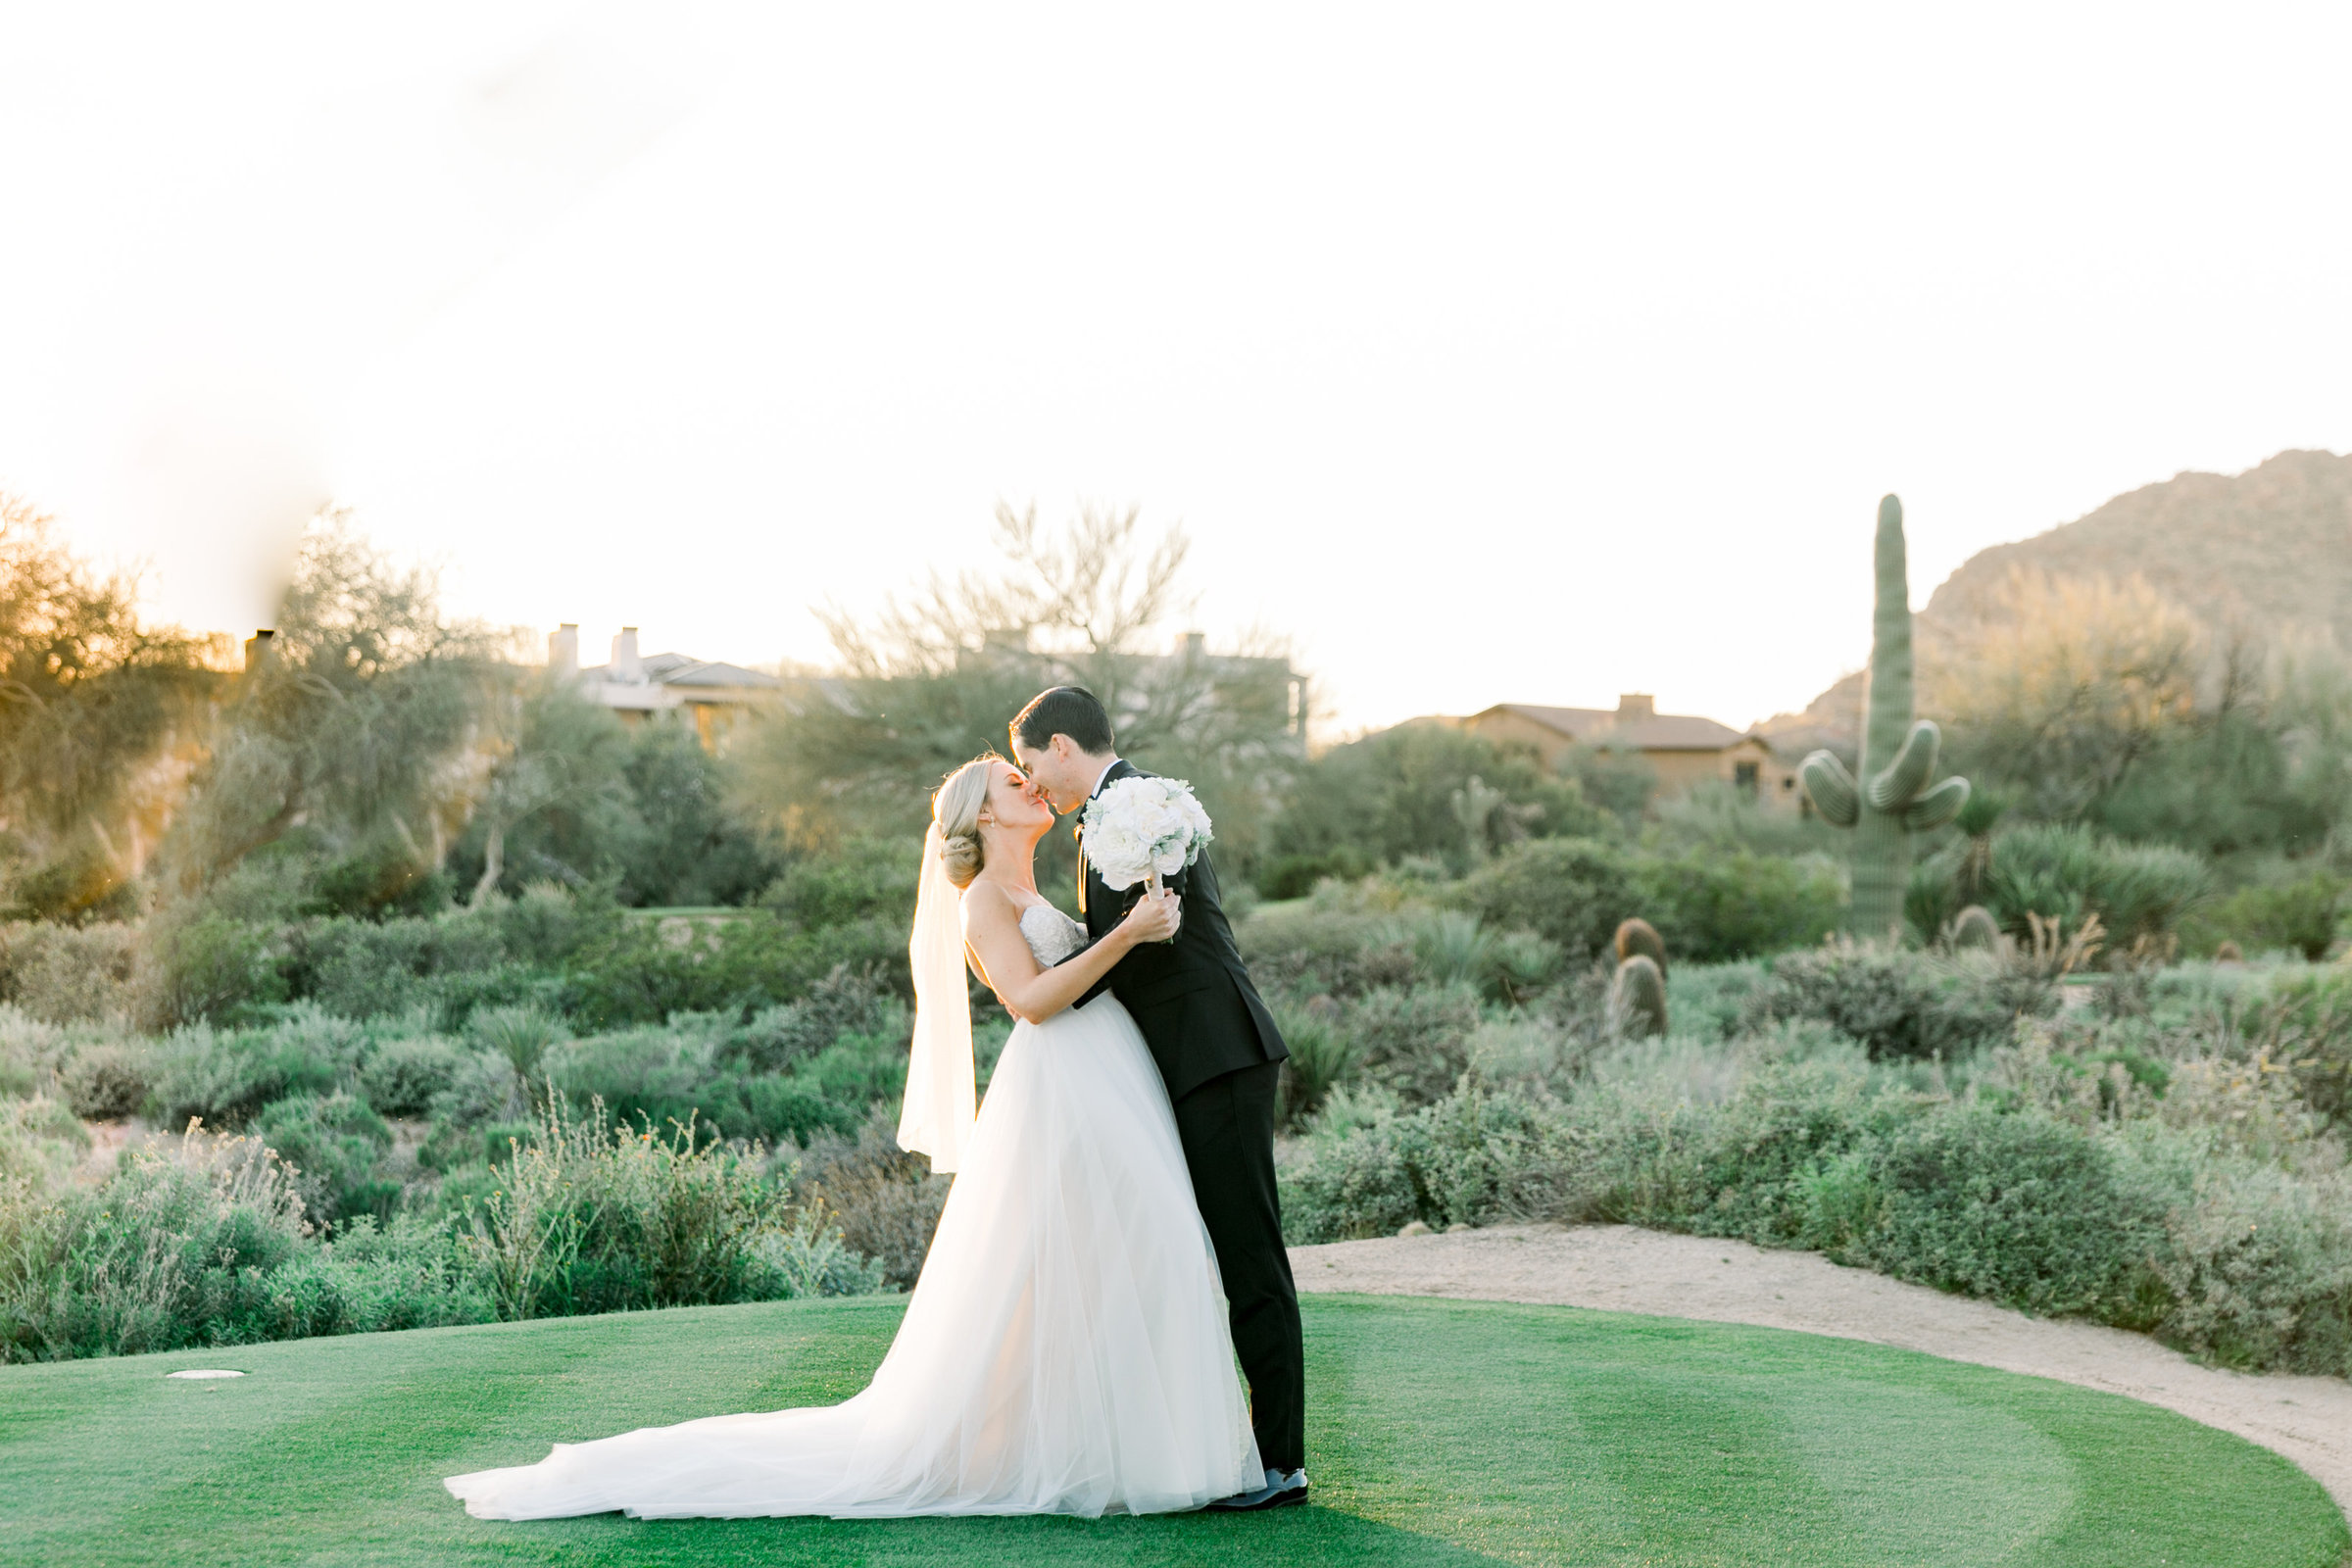 Karlie Colleen Photography - Arizona Wedding at The Troon Scottsdale Country Club - Paige & Shane -697